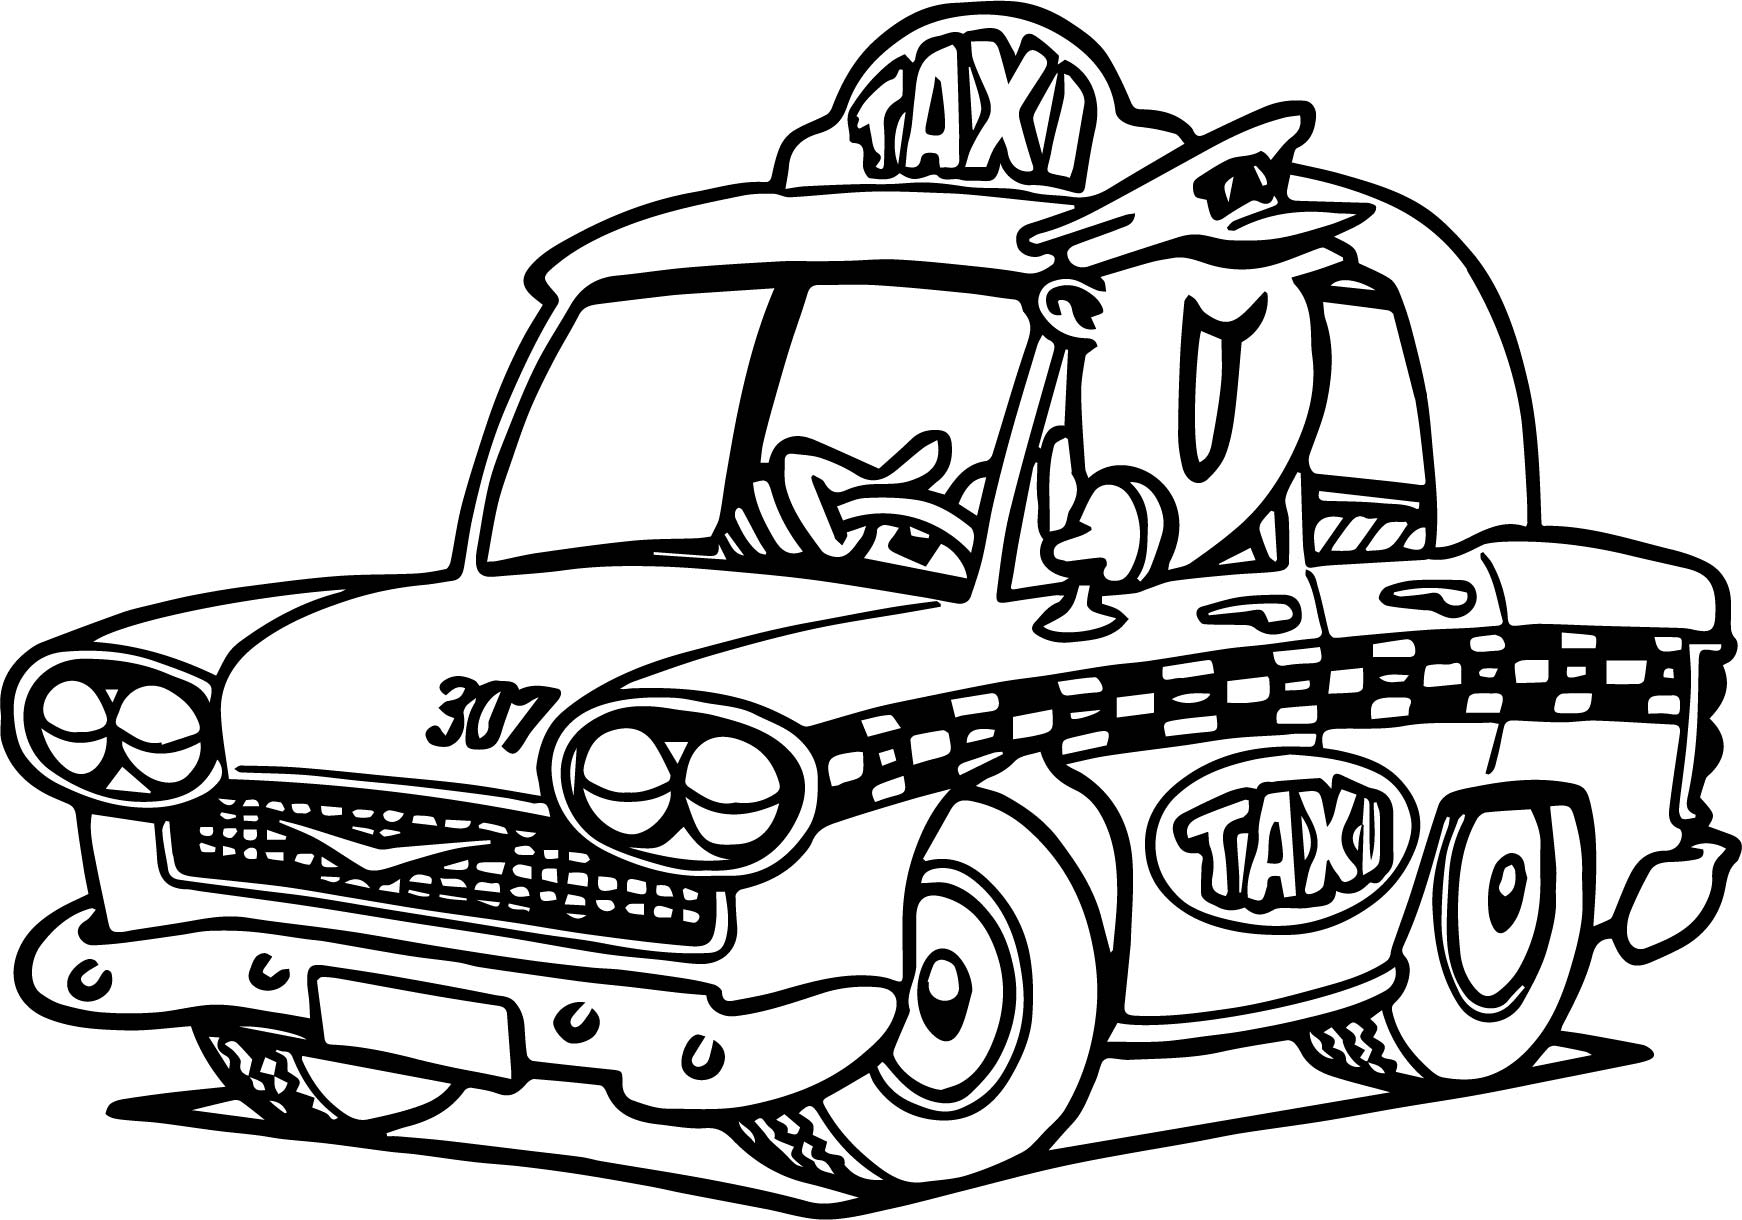 cab drawing taxi cab coloring page at getdrawings free download drawing cab